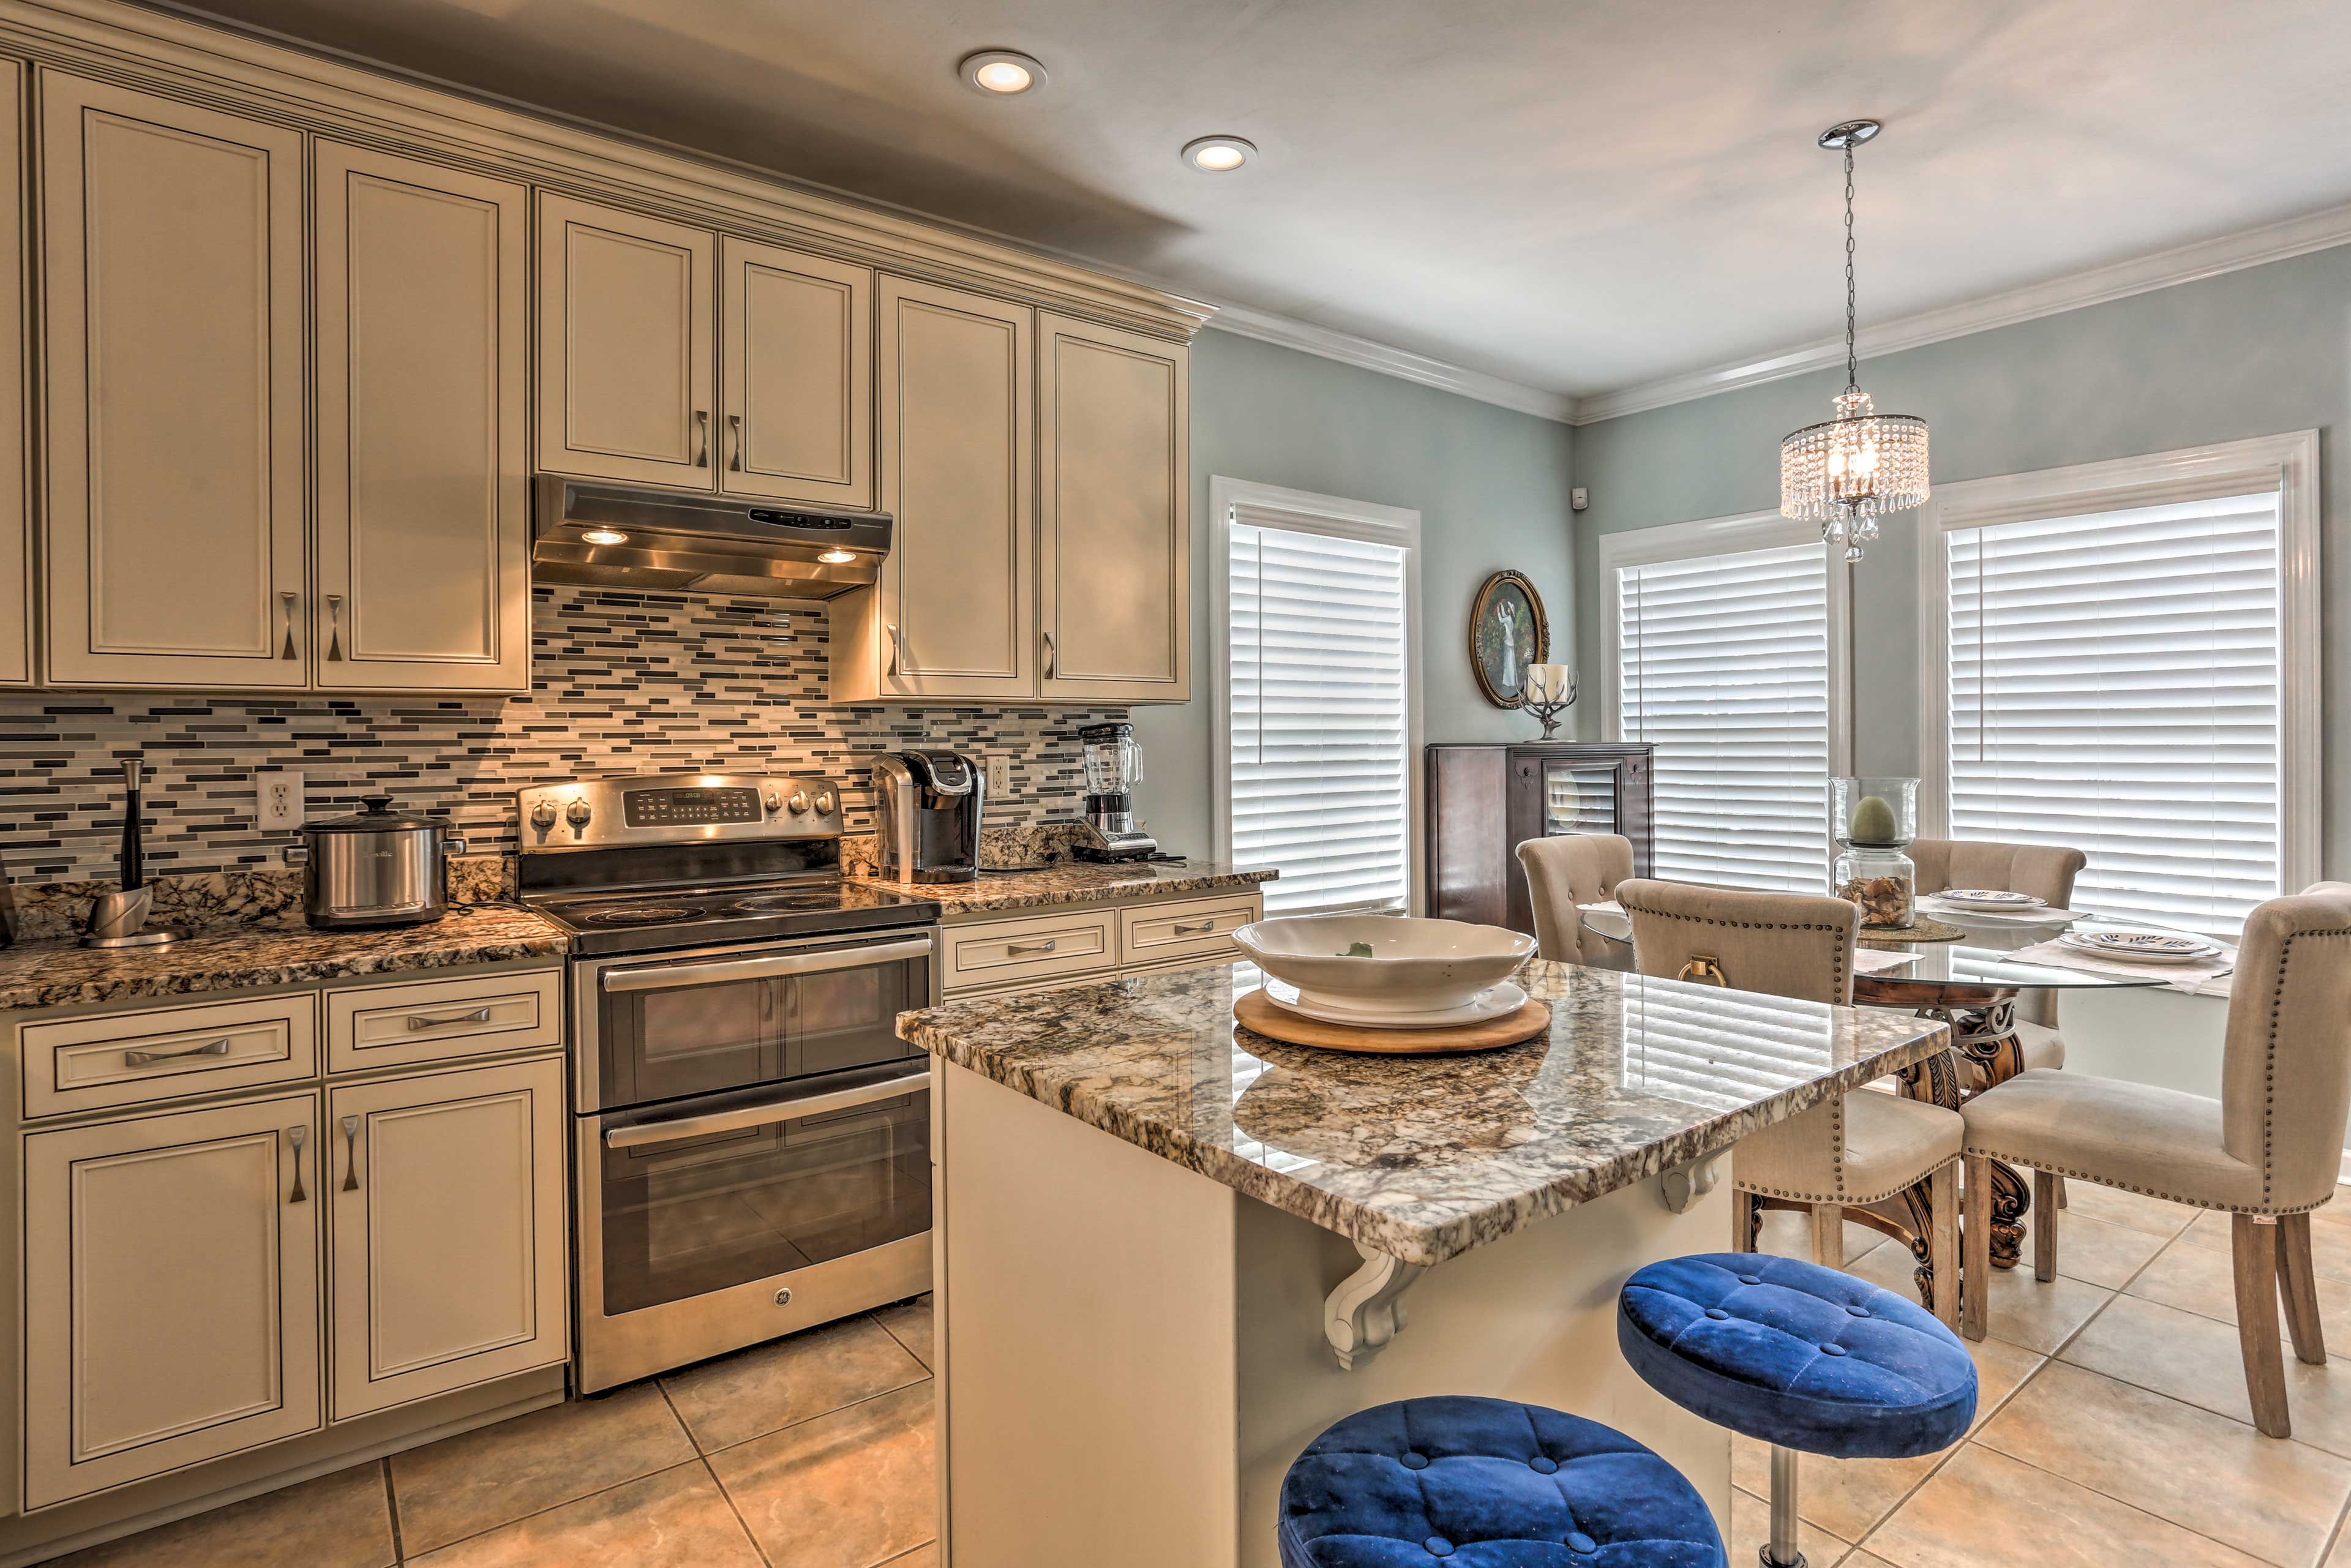 The fully equipped kitchen is both lavish and practical.